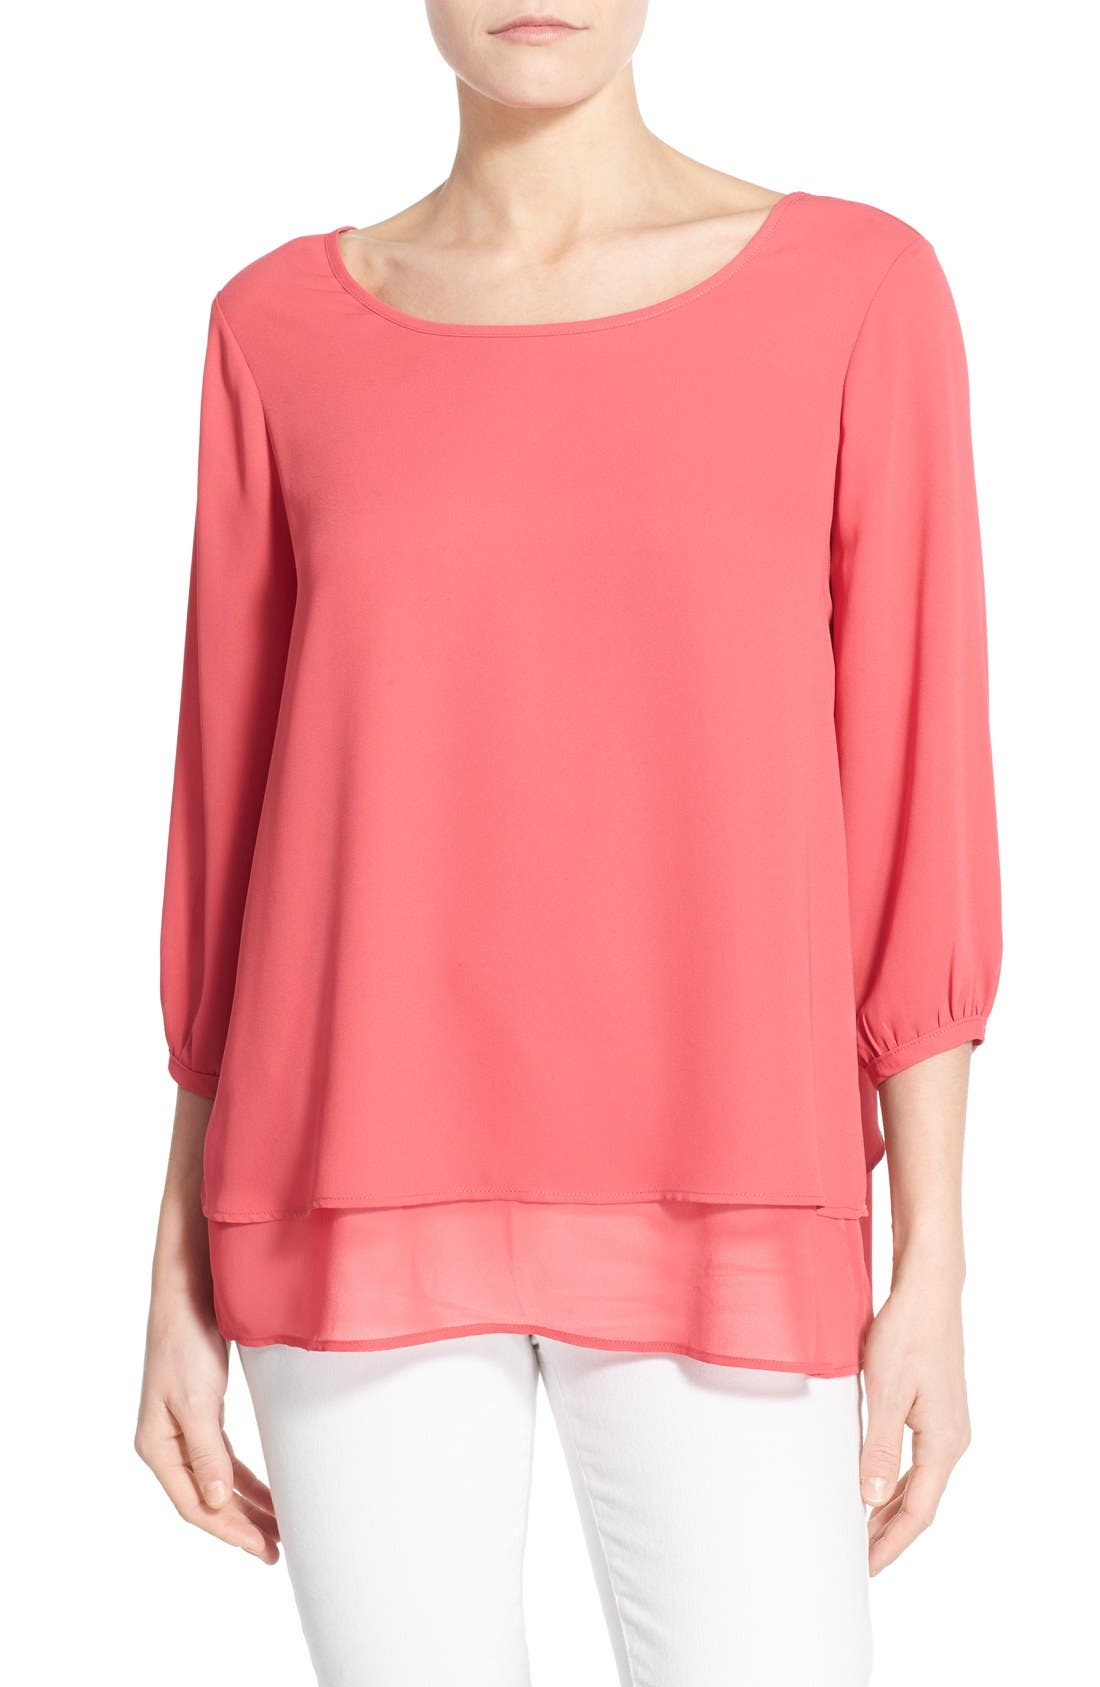 Alternate Image 1 Selected - Pleione Layered Chiffon Top (Regular & Petite)